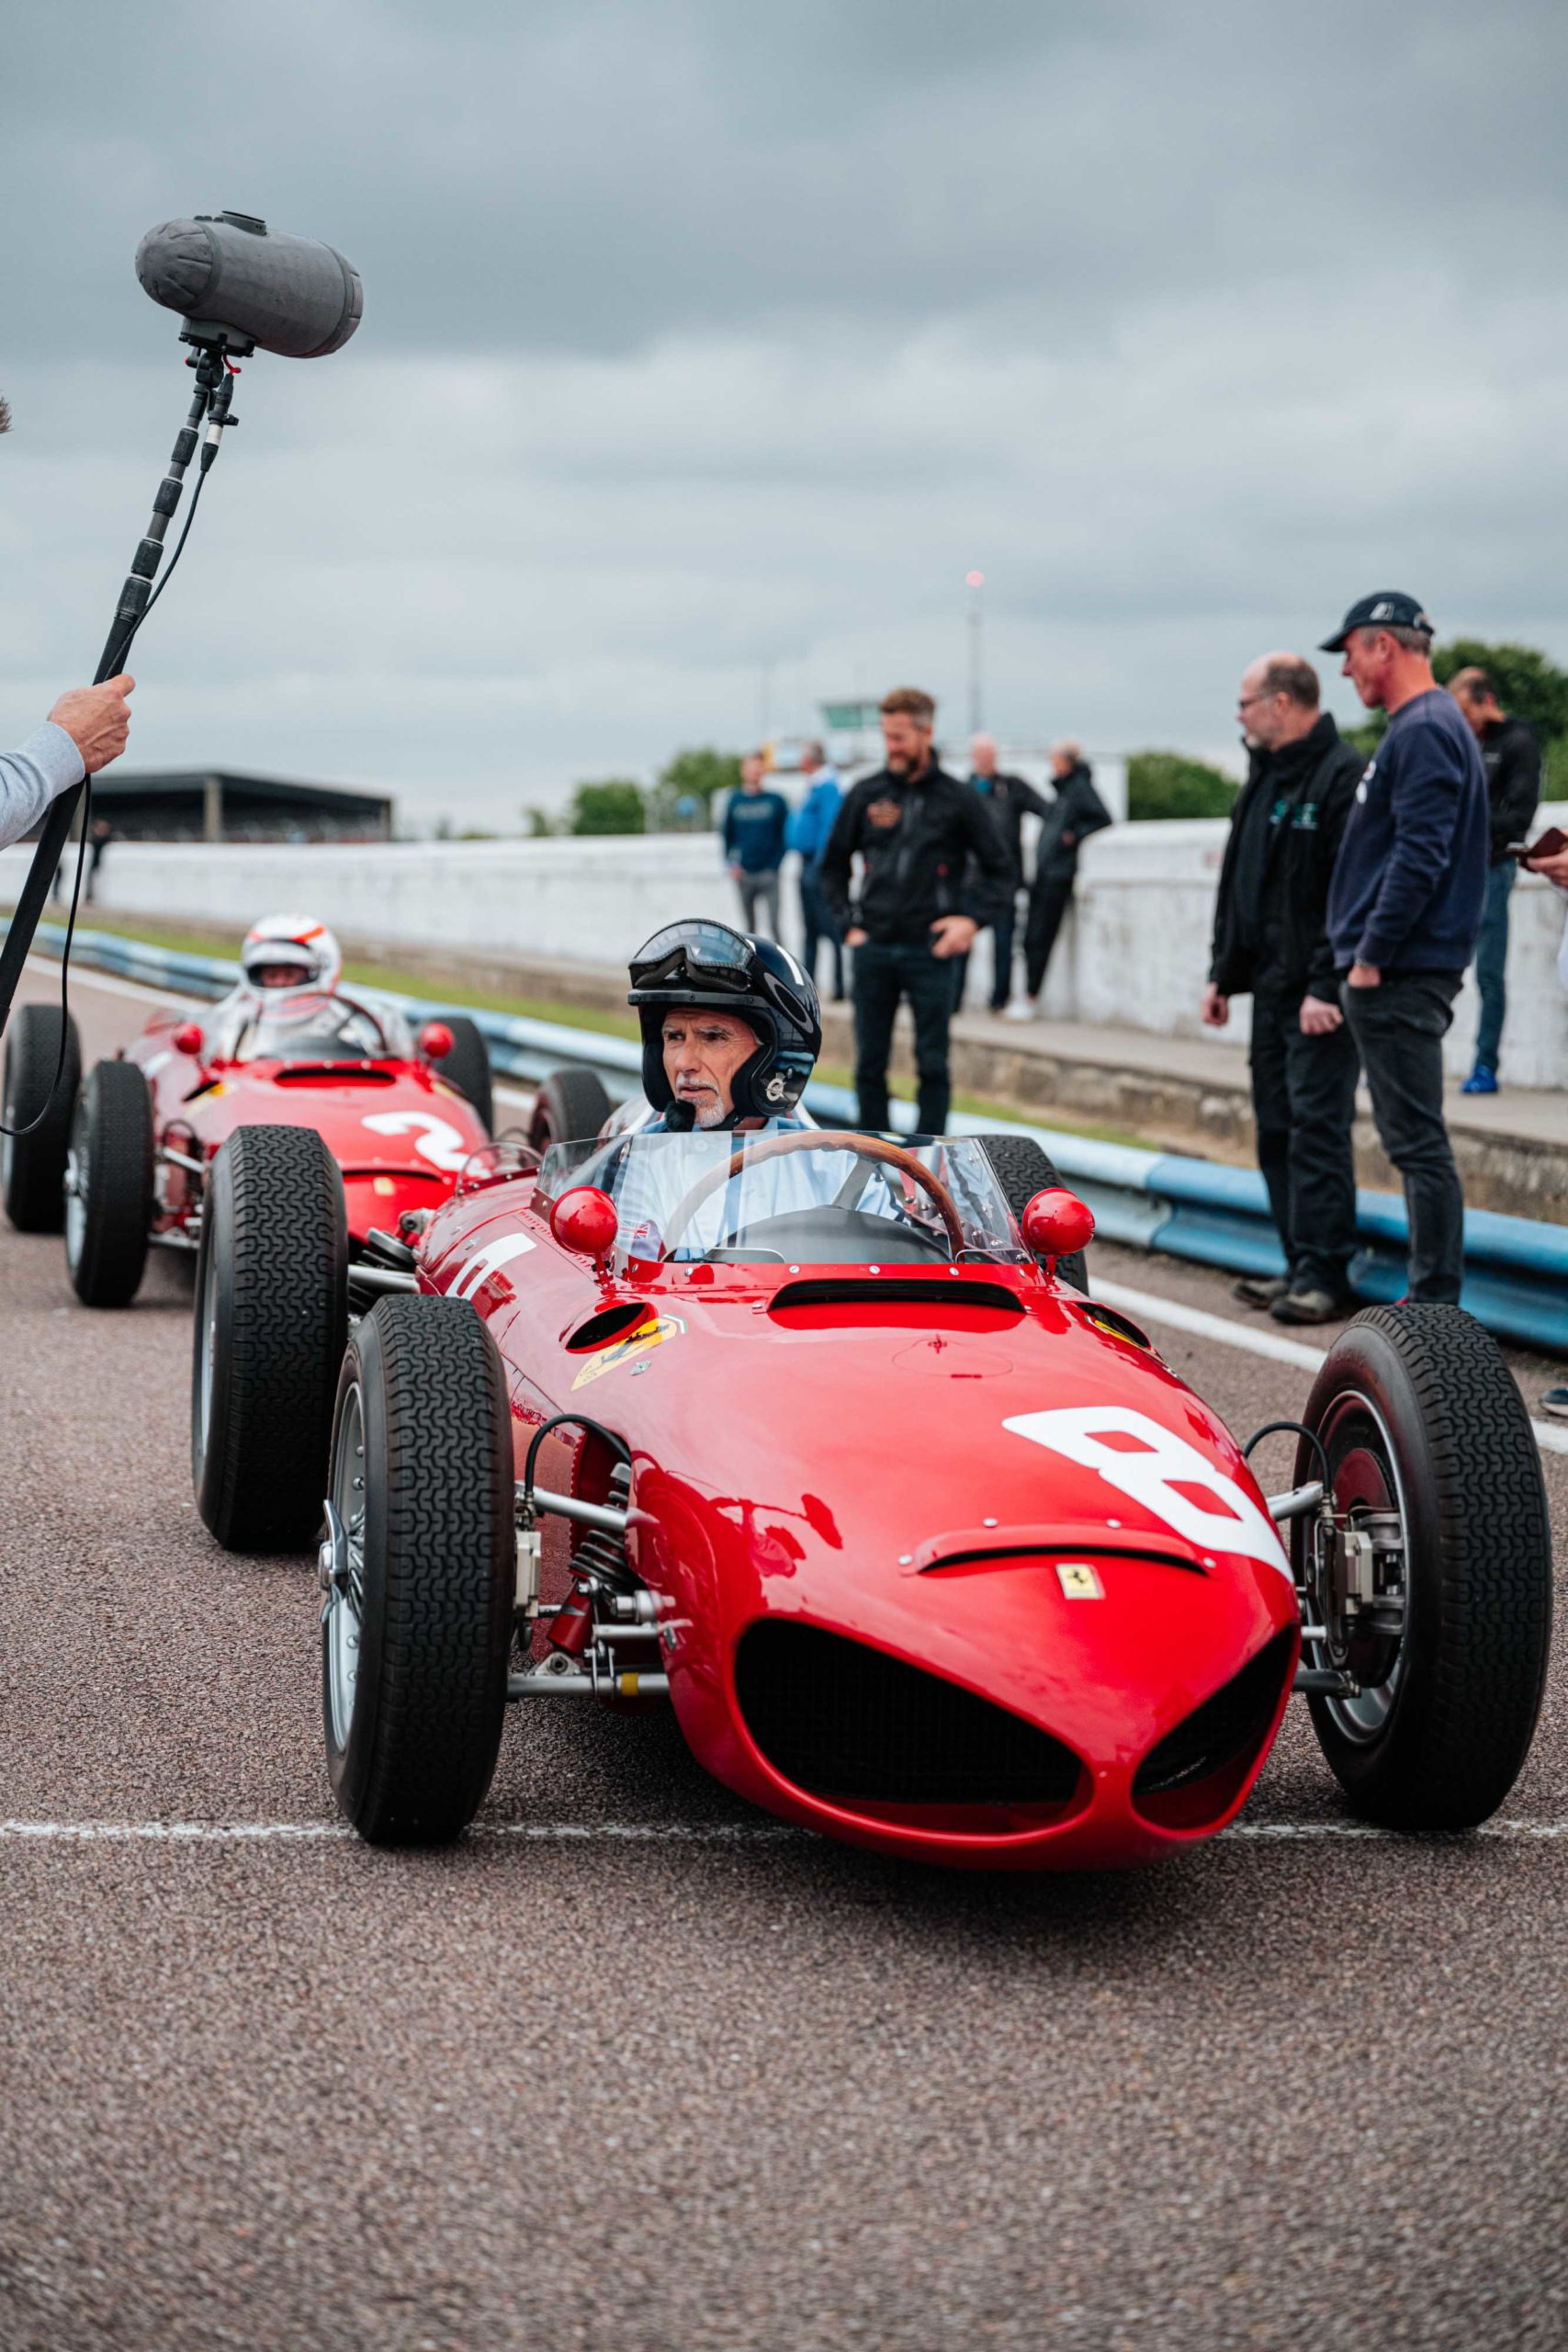 Damon Hill and Martin Brundle line up in Ferrari Sharknoses